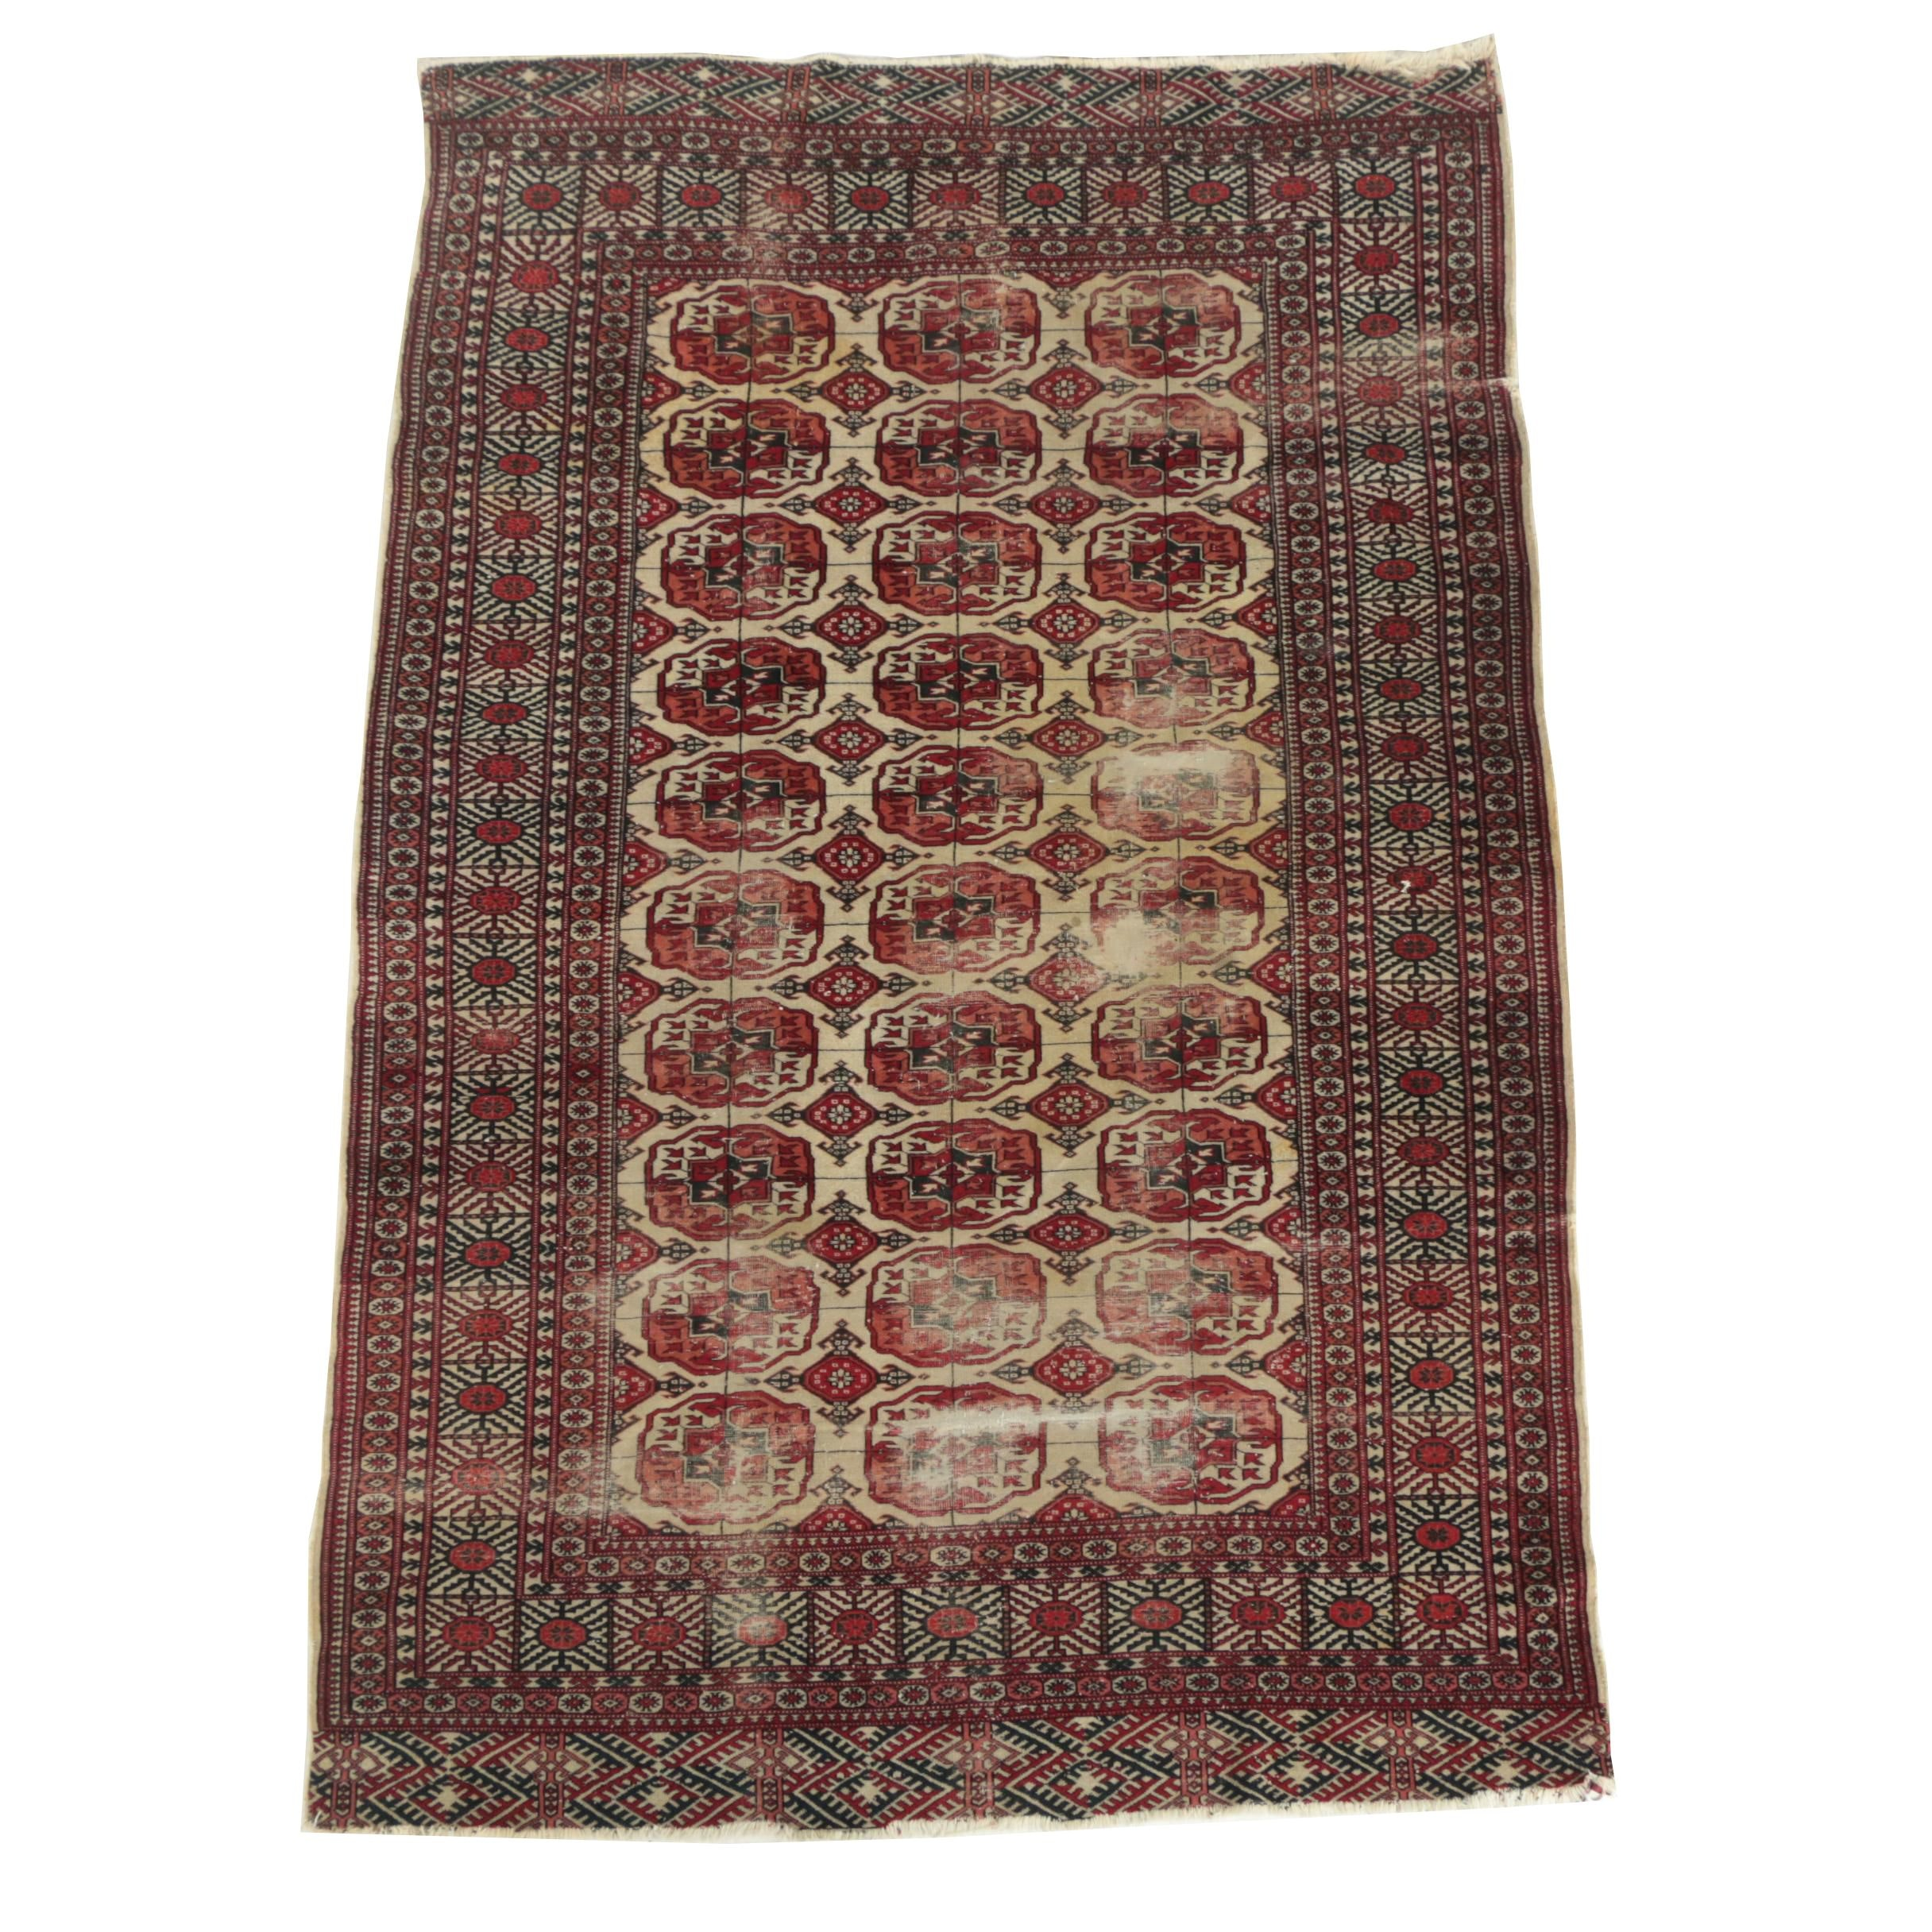 Vintage Hand-Knotted Turkmen Bokhara Wool Area Rug